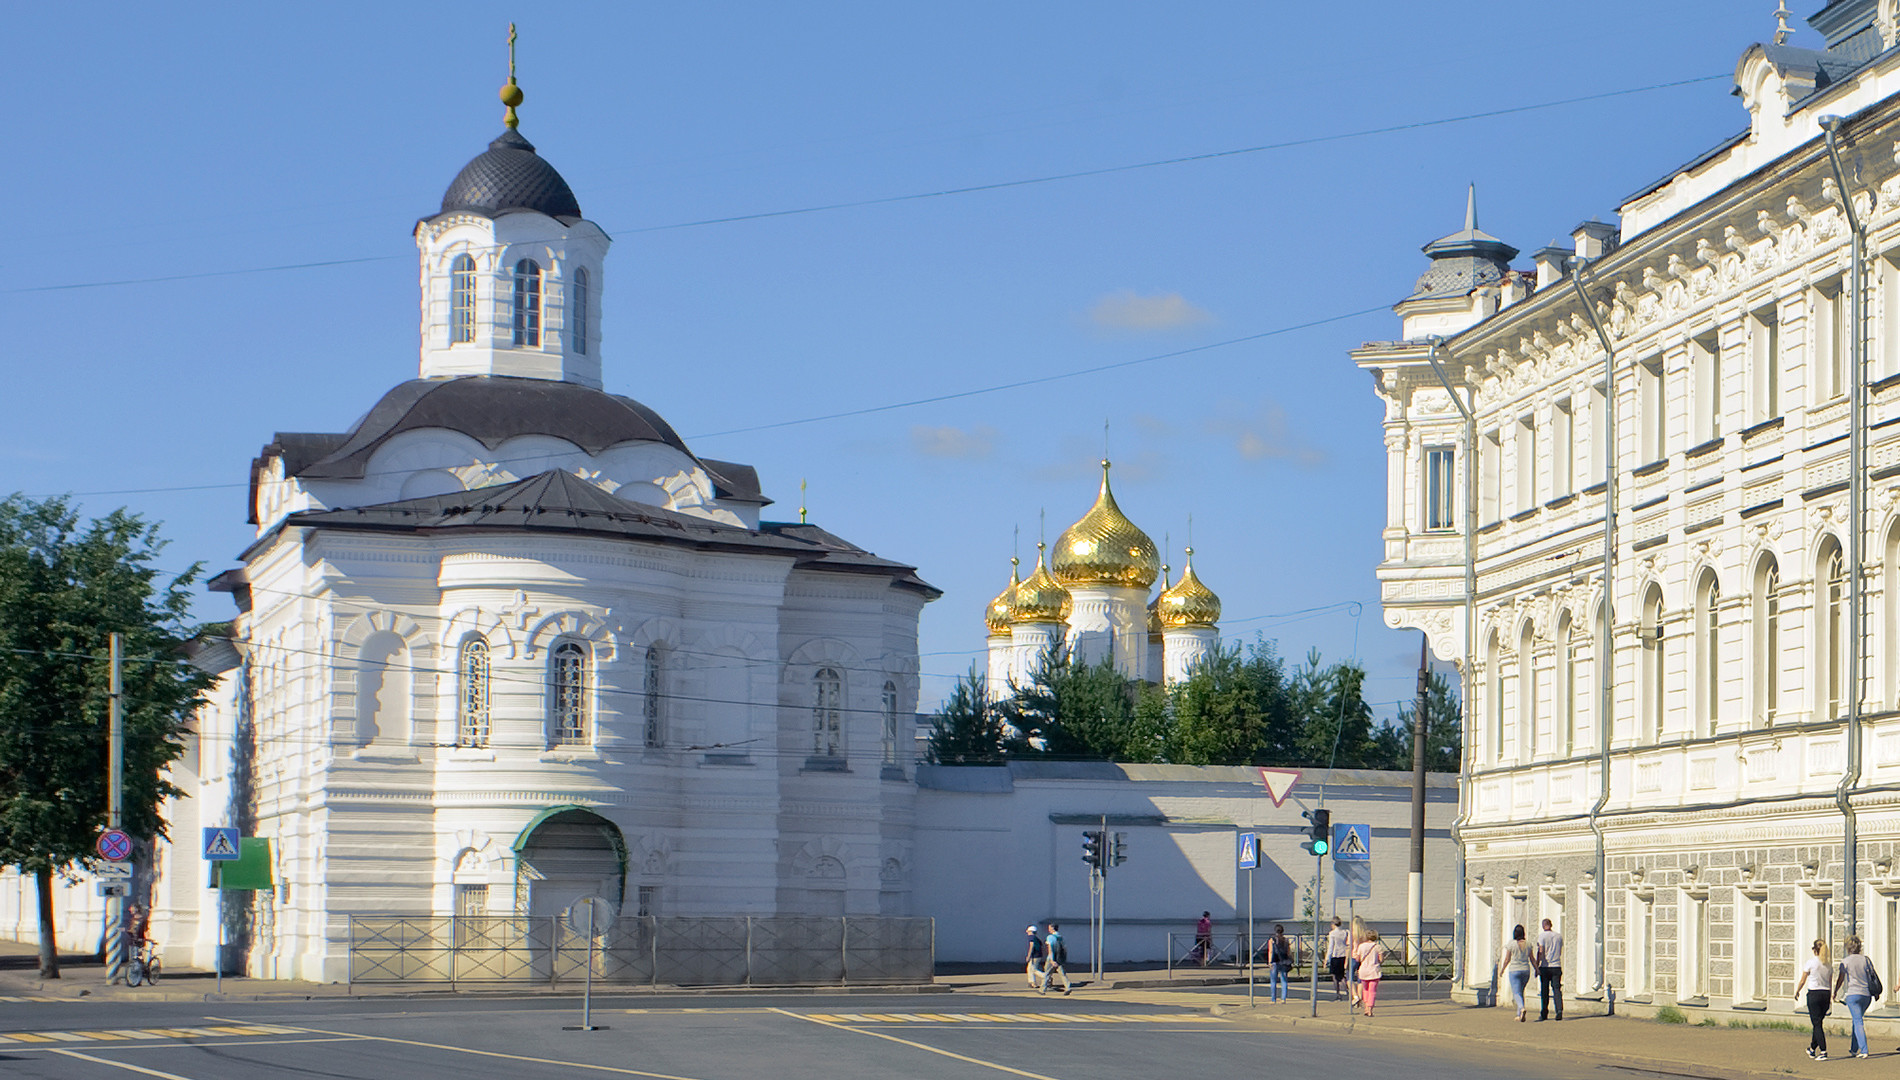 Kostroma. Epiphany-St. Anastasia Convent. From left: Church of Smolensk Icon of the Virgin, Epiphany Cathedral, Tretyakov Building. August 12, 2017.